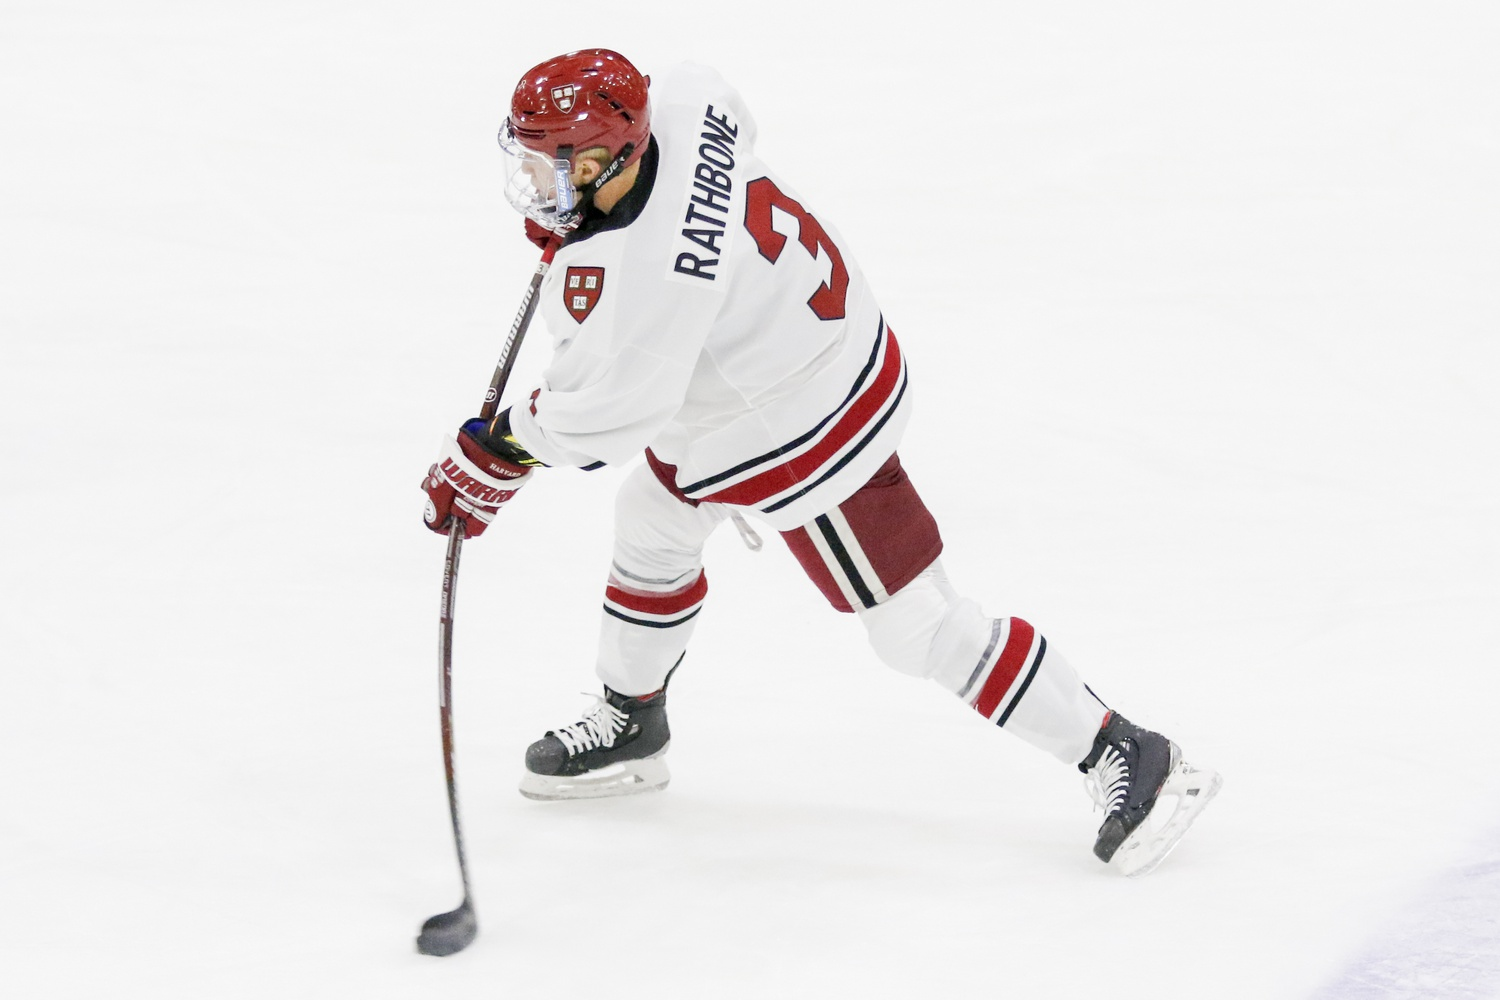 The Crimson's young defensive corps is led by sophomore Jack Rathbone and junior Reilly Walsh, both offensive-minded blue-liners who are also key pieces of the power play.